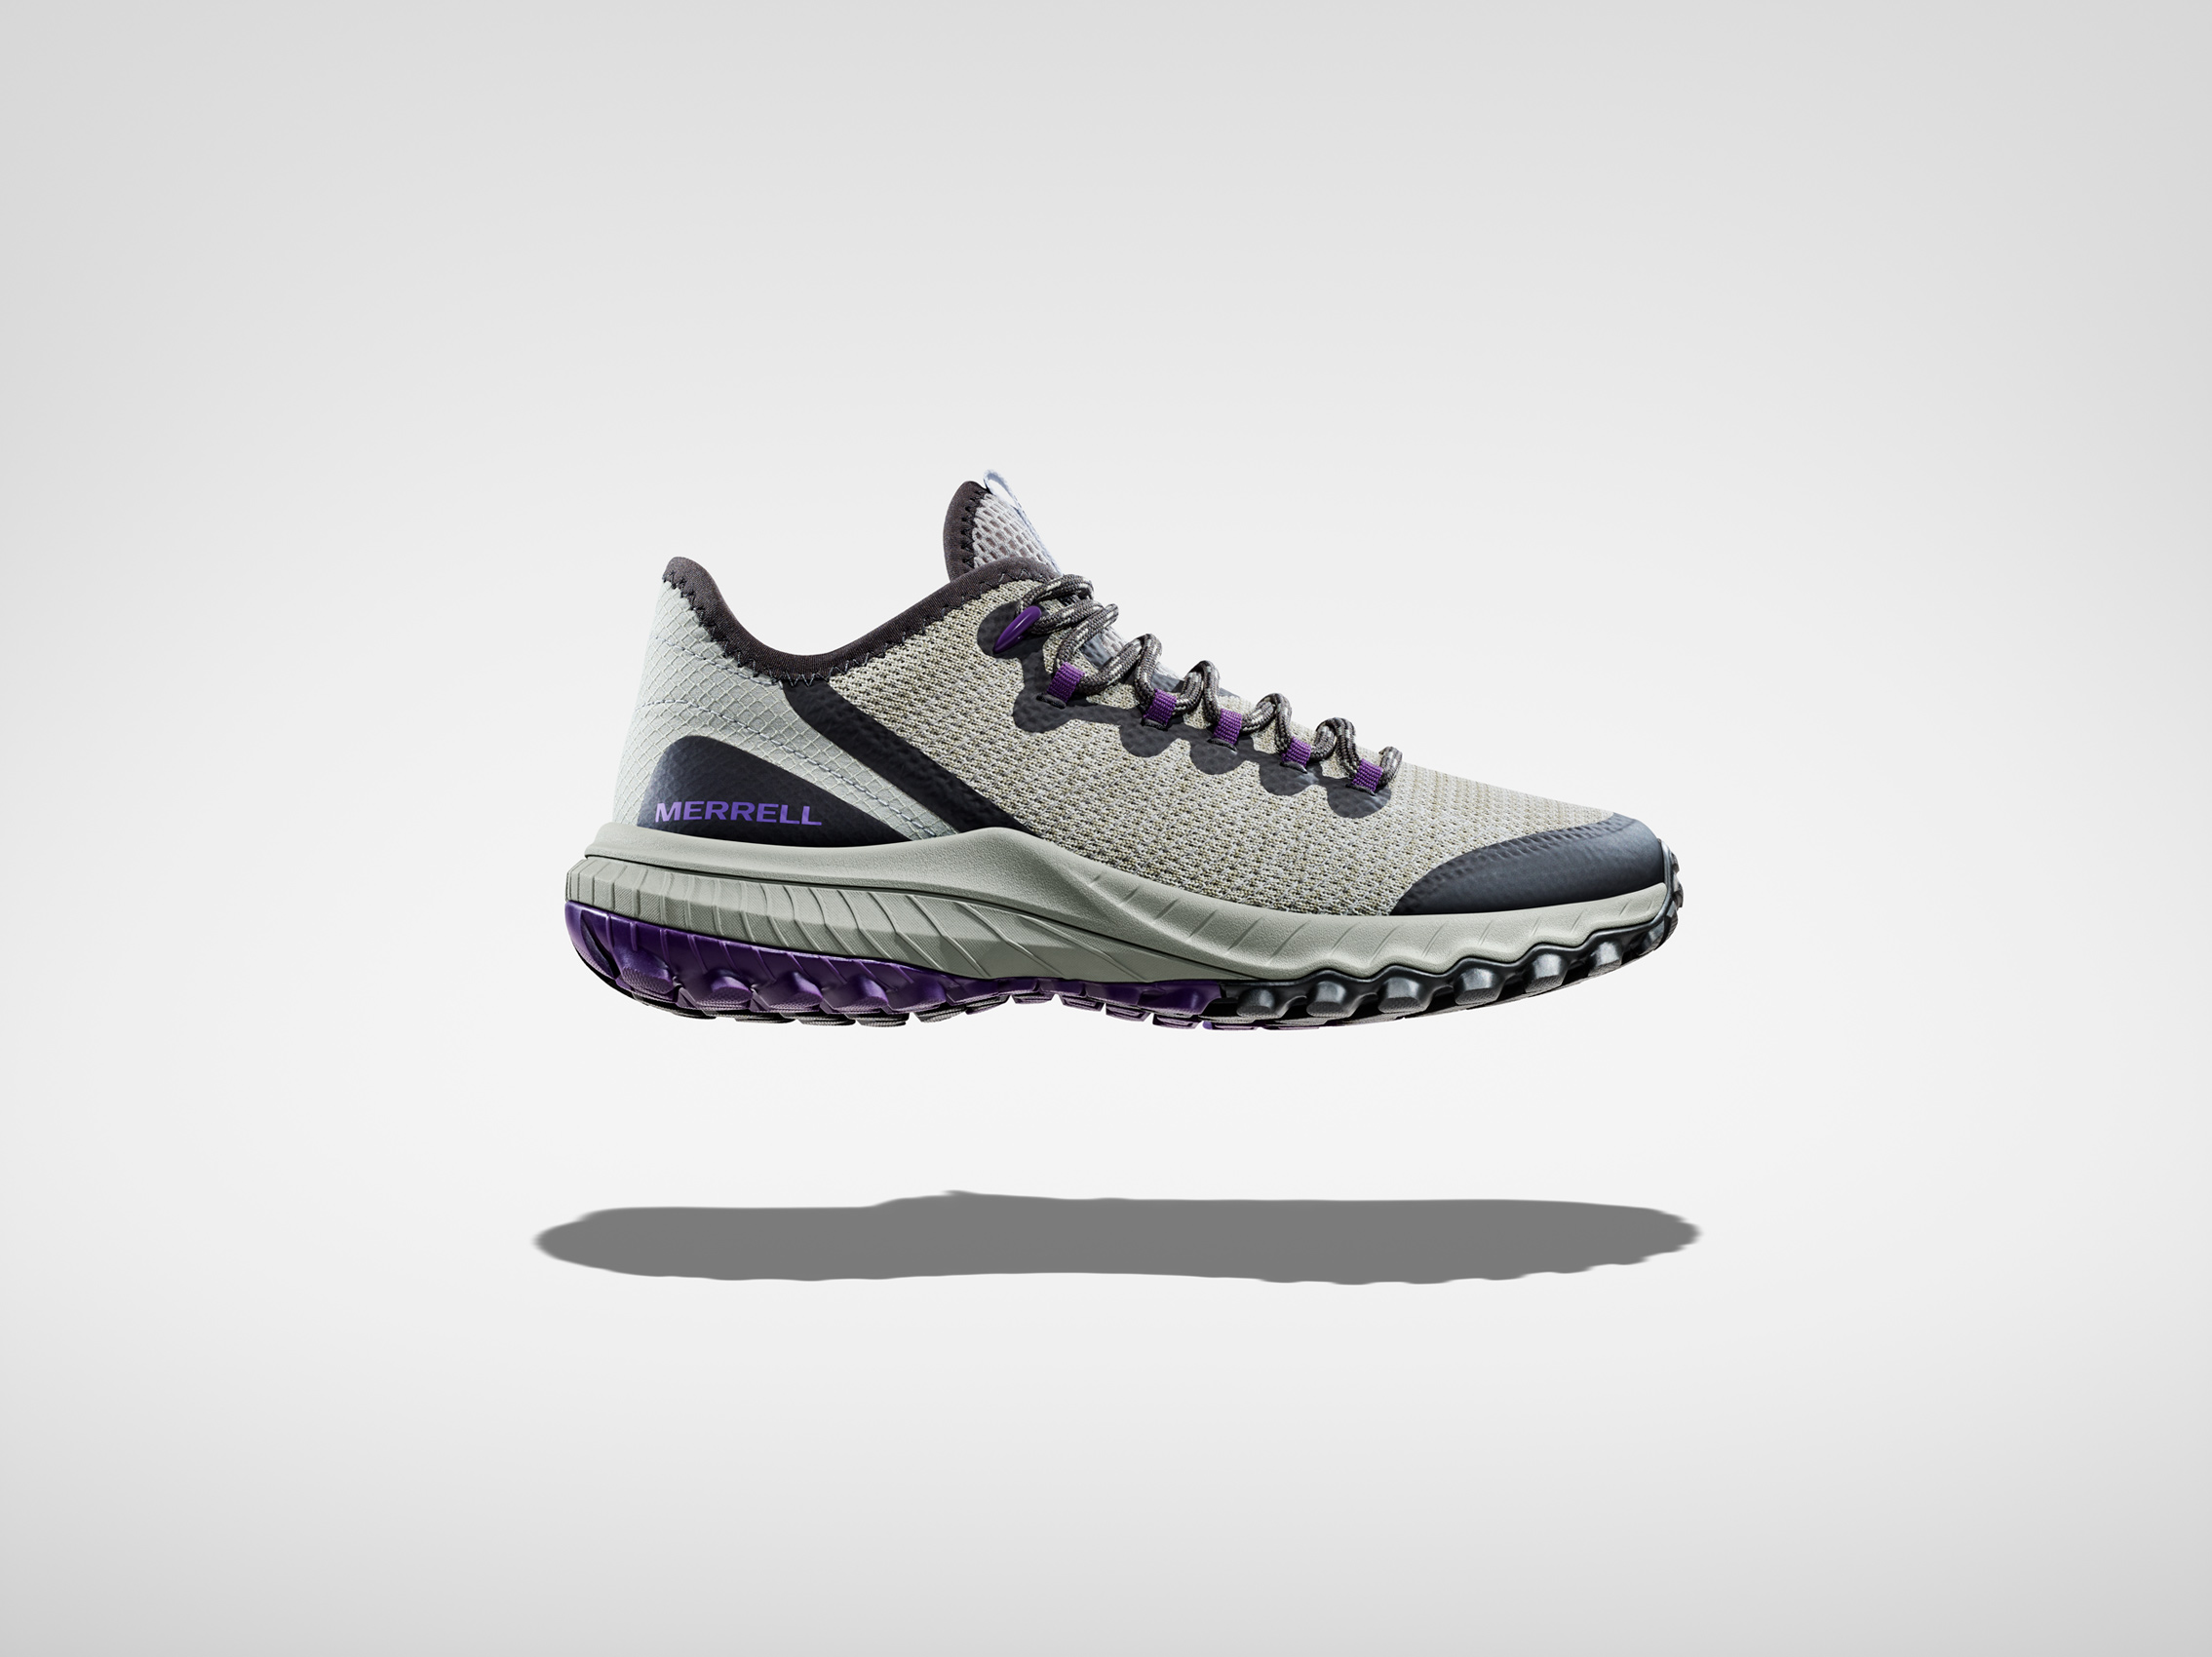 Merrell  Sniker shoe profile floating on white surface